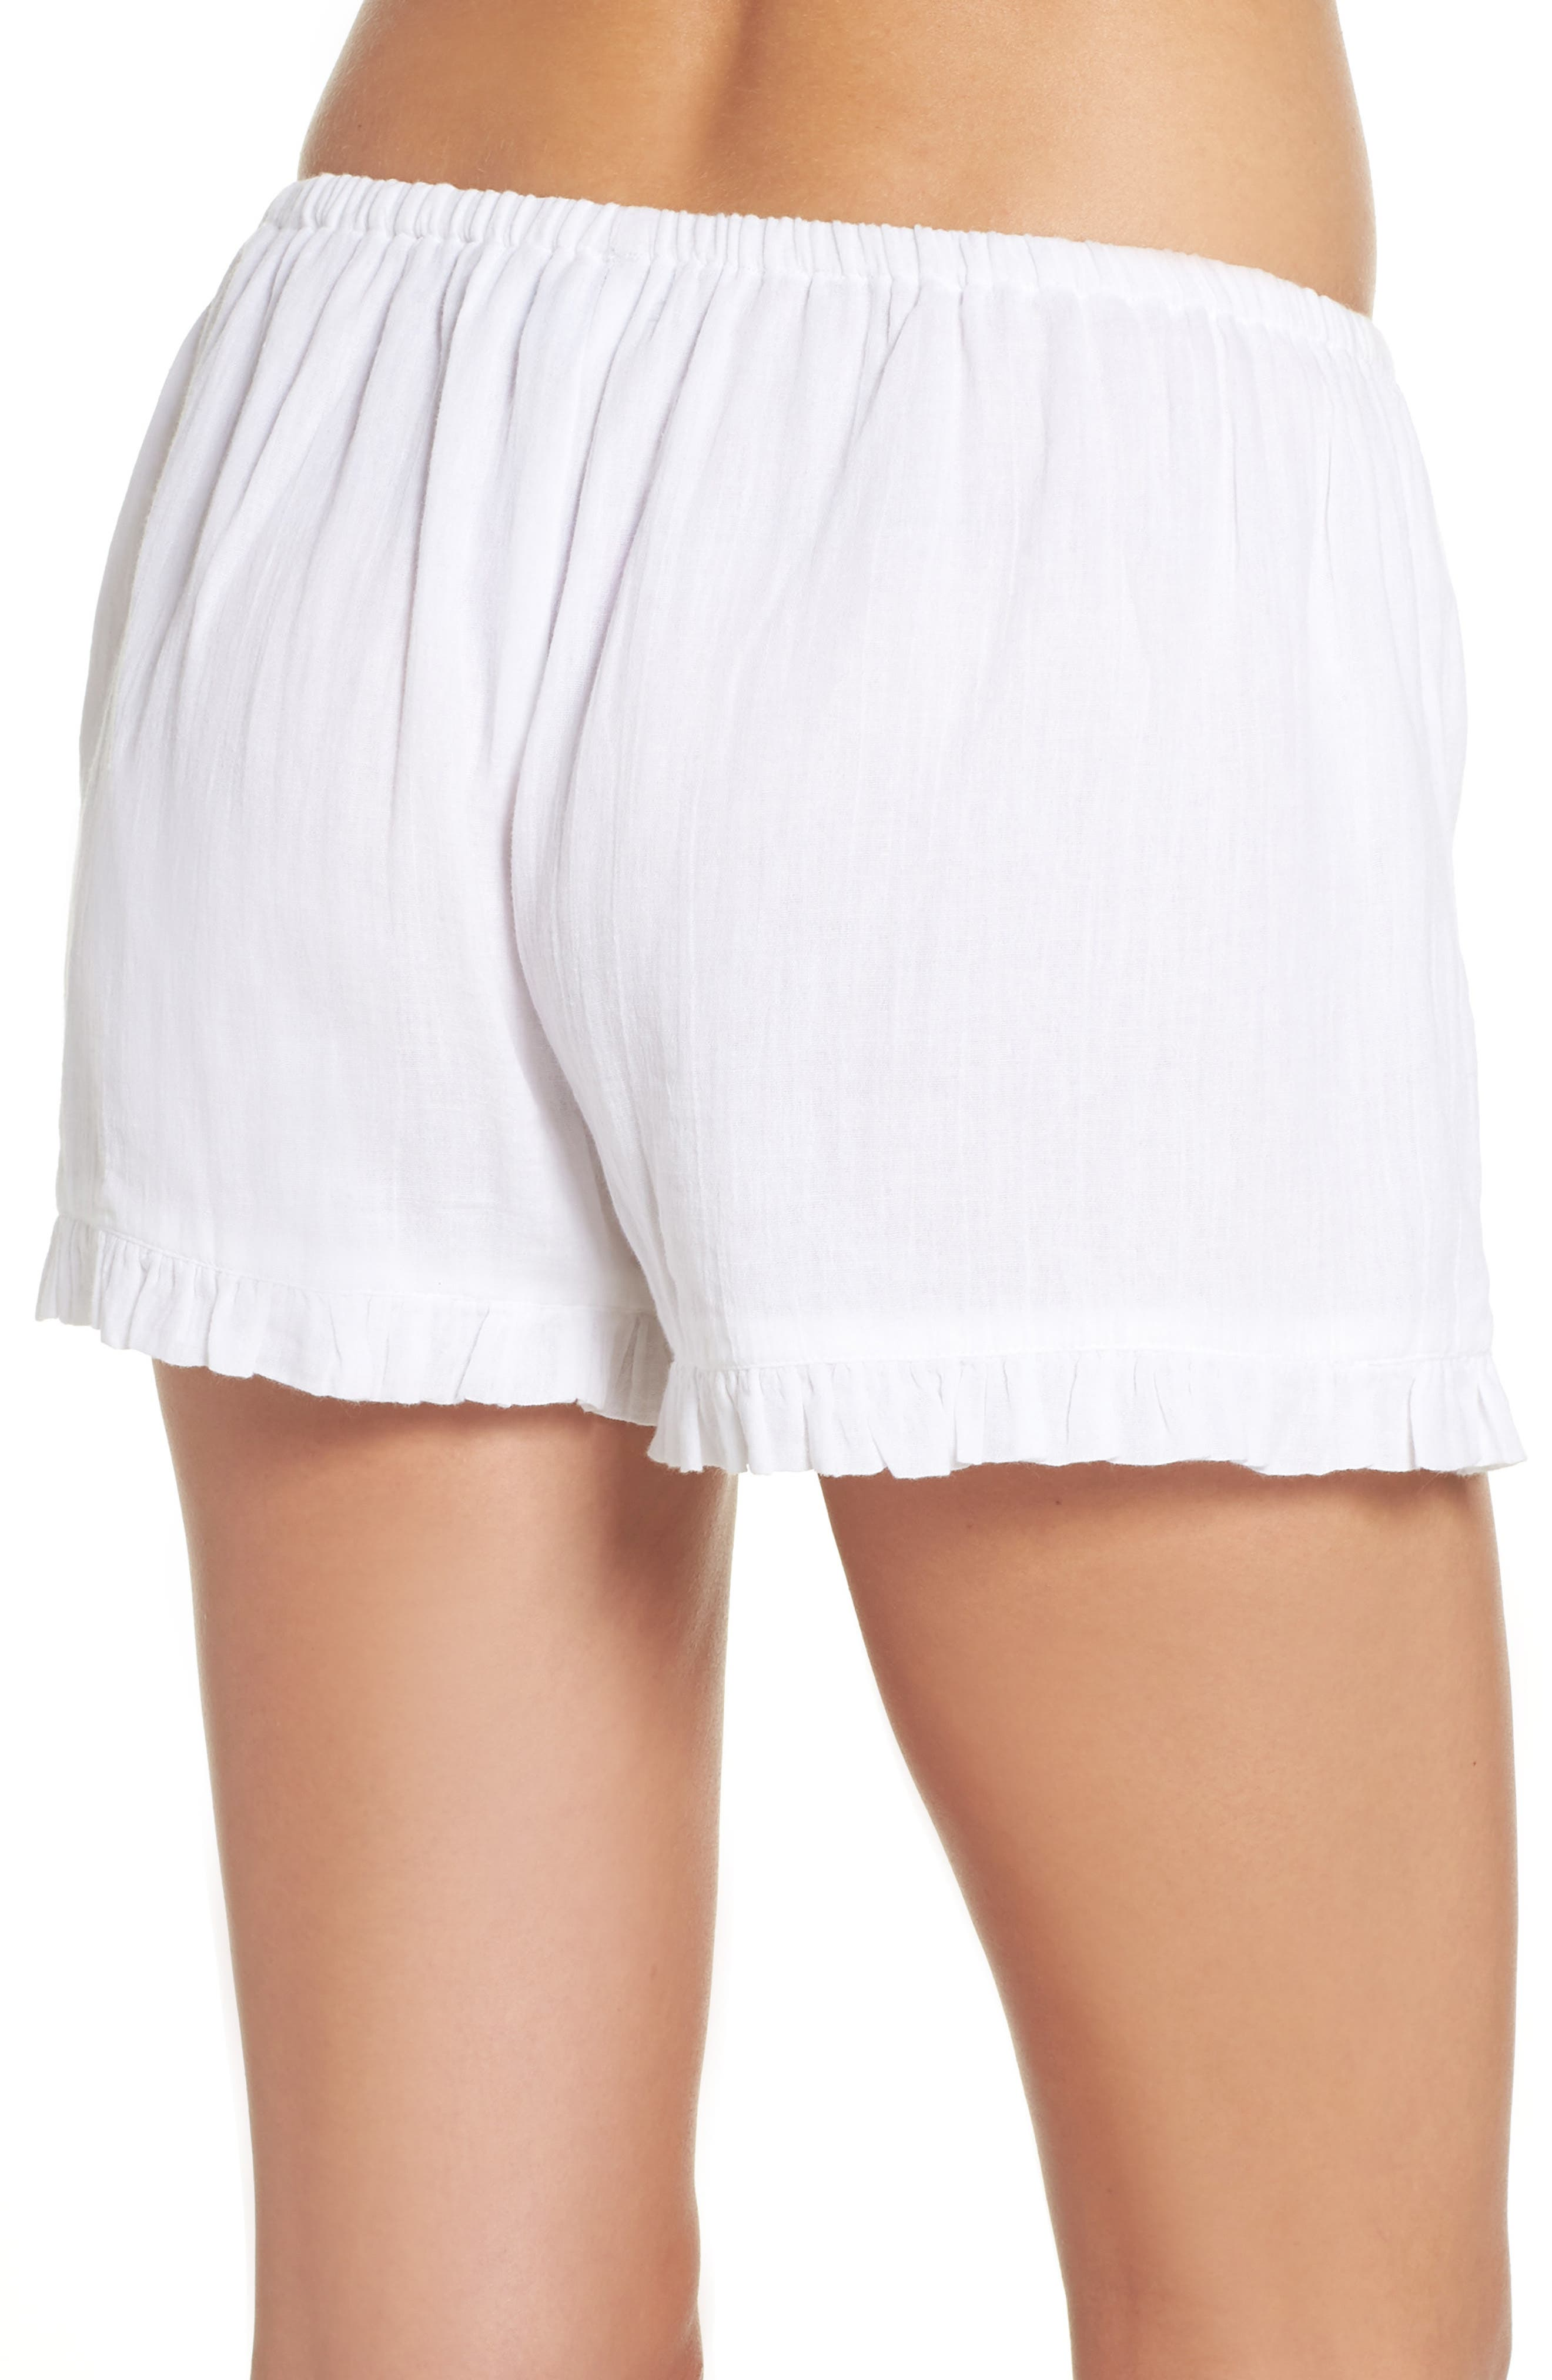 Cambria Ruffle Sleep Shorts,                             Alternate thumbnail 2, color,                             White